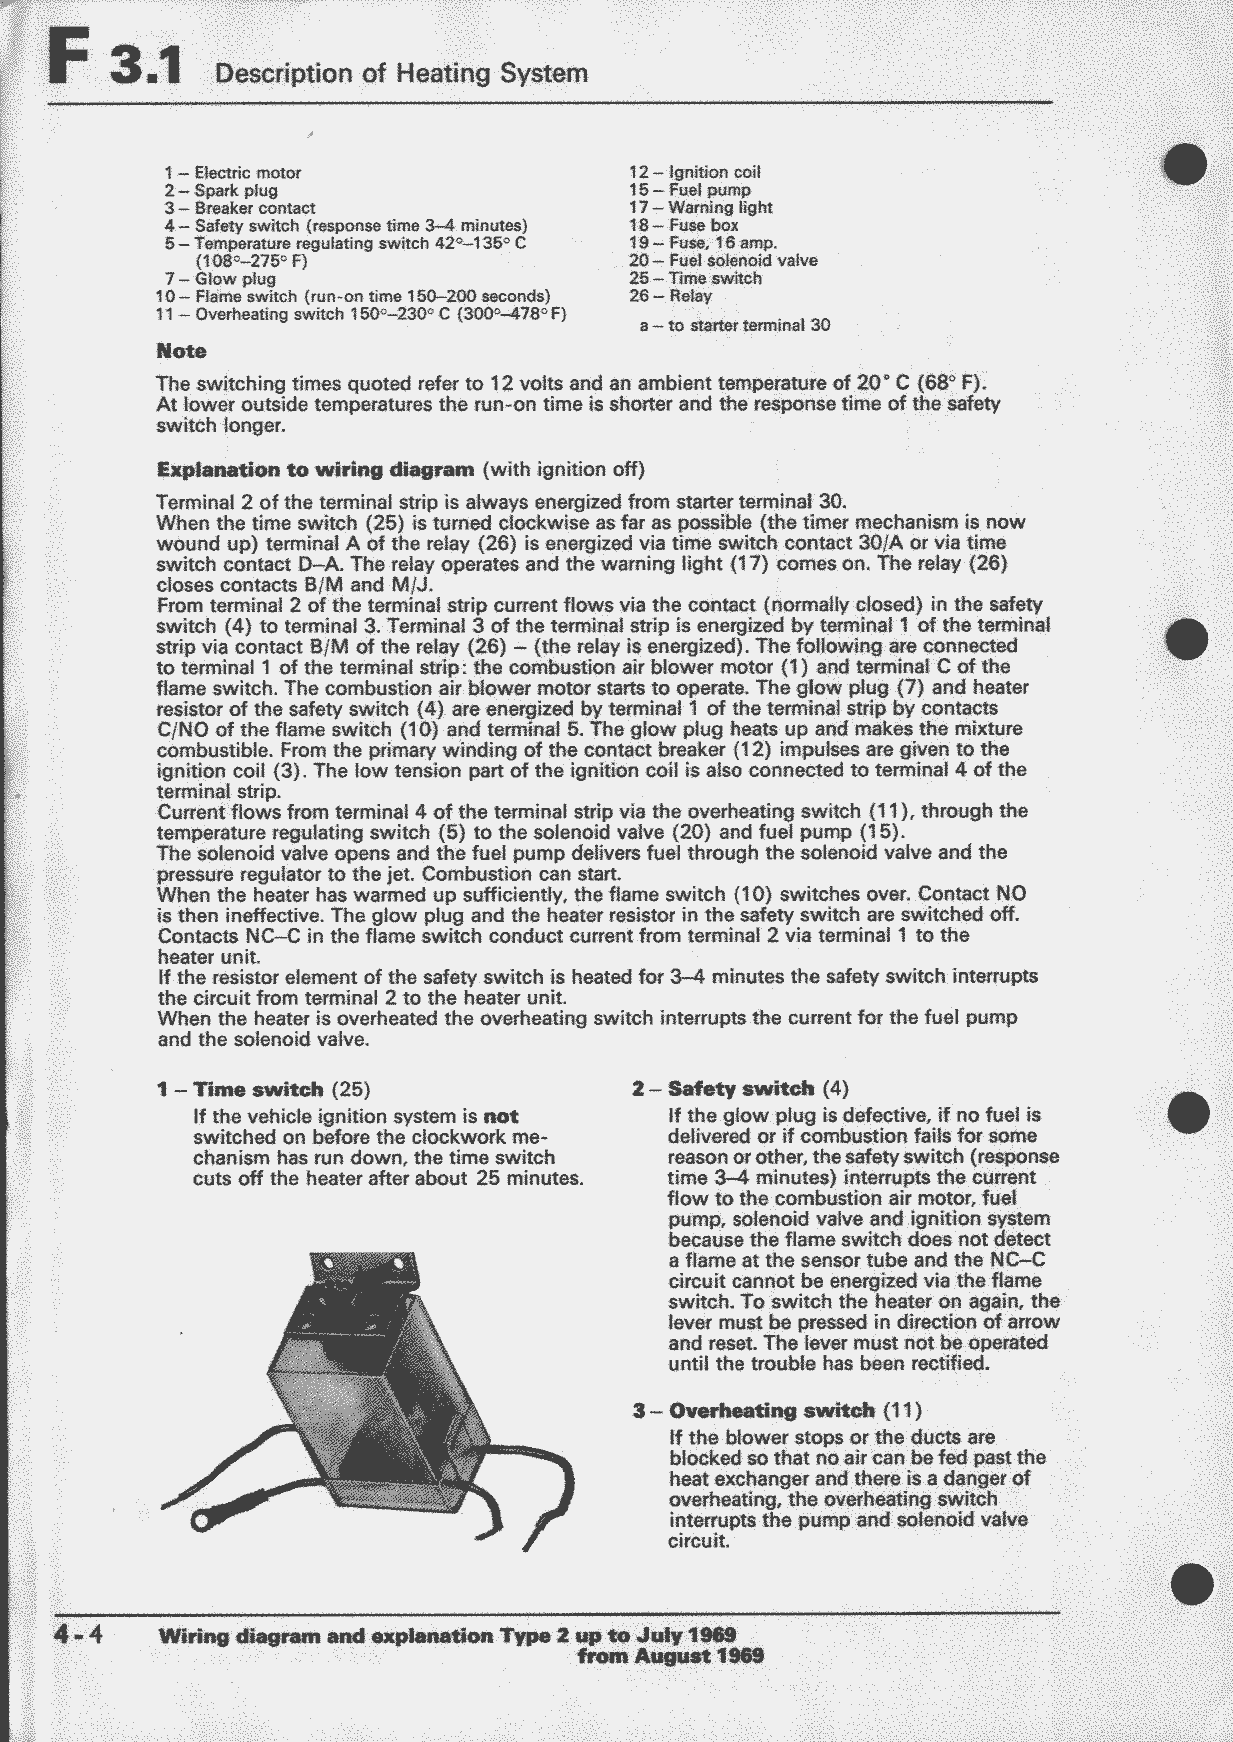 Obsolete Air Cooled Documentation Project Vw Workshop Manual Ignition Coil Wiring Diagram Types 2 And 181